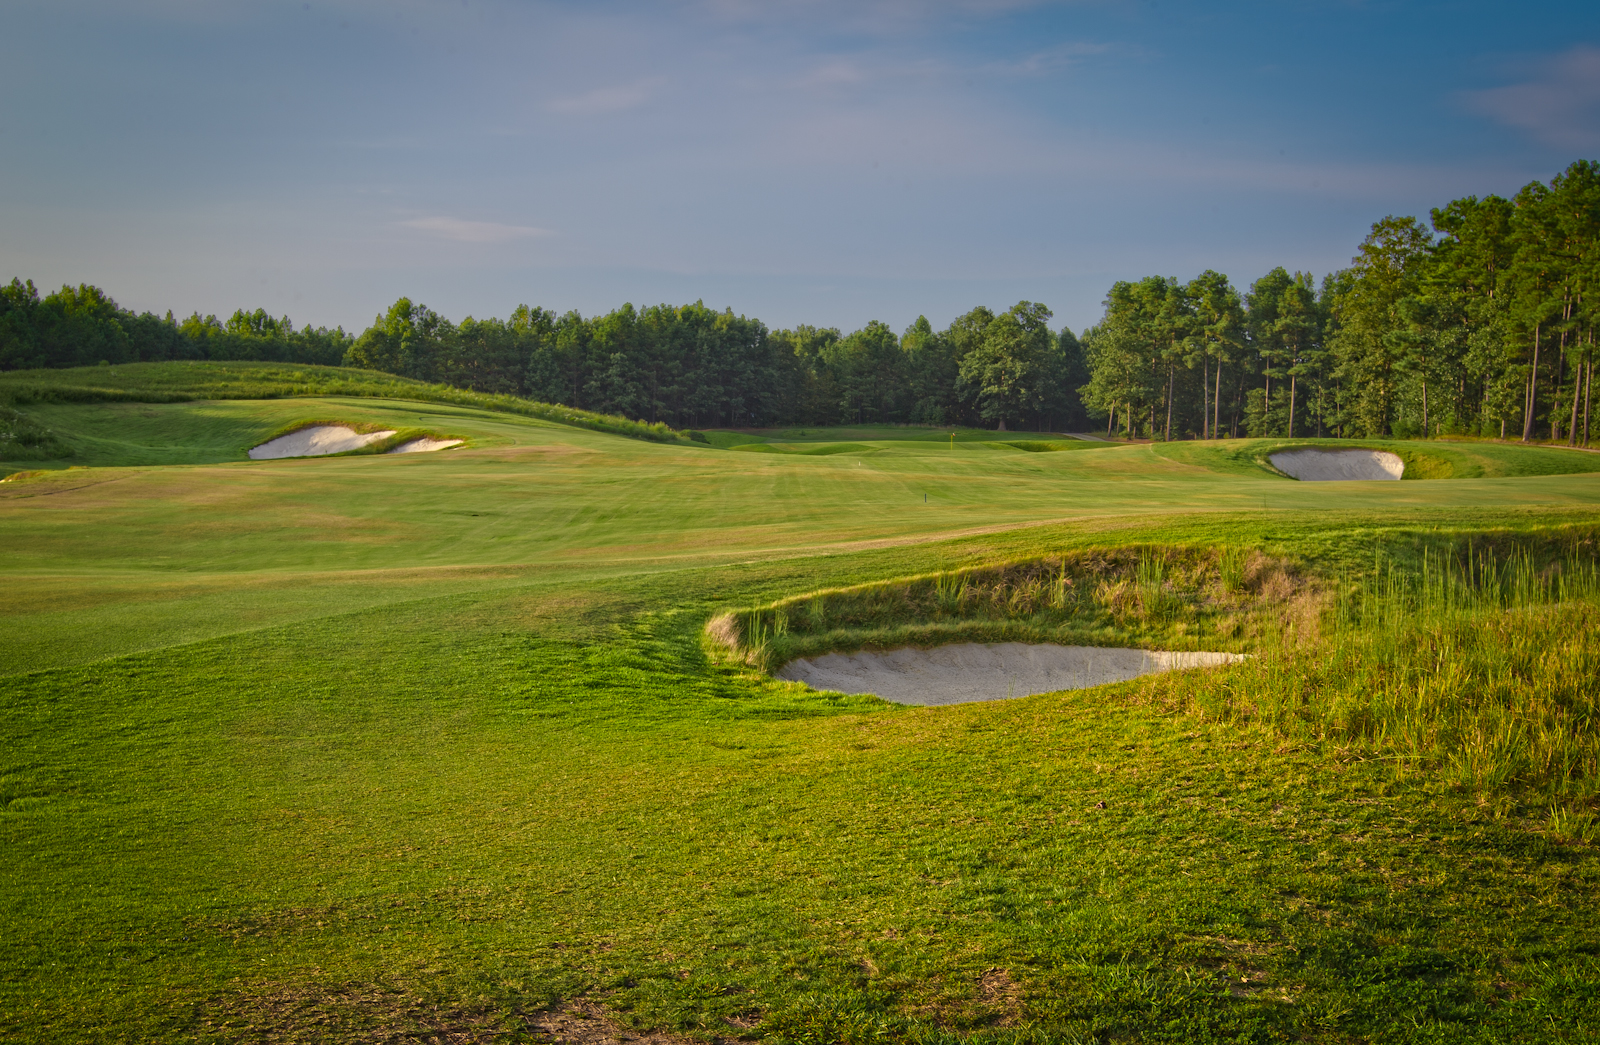 Royal_New_Kent_Gof_Club-Course_by_Terri_Aigner-16-of-74